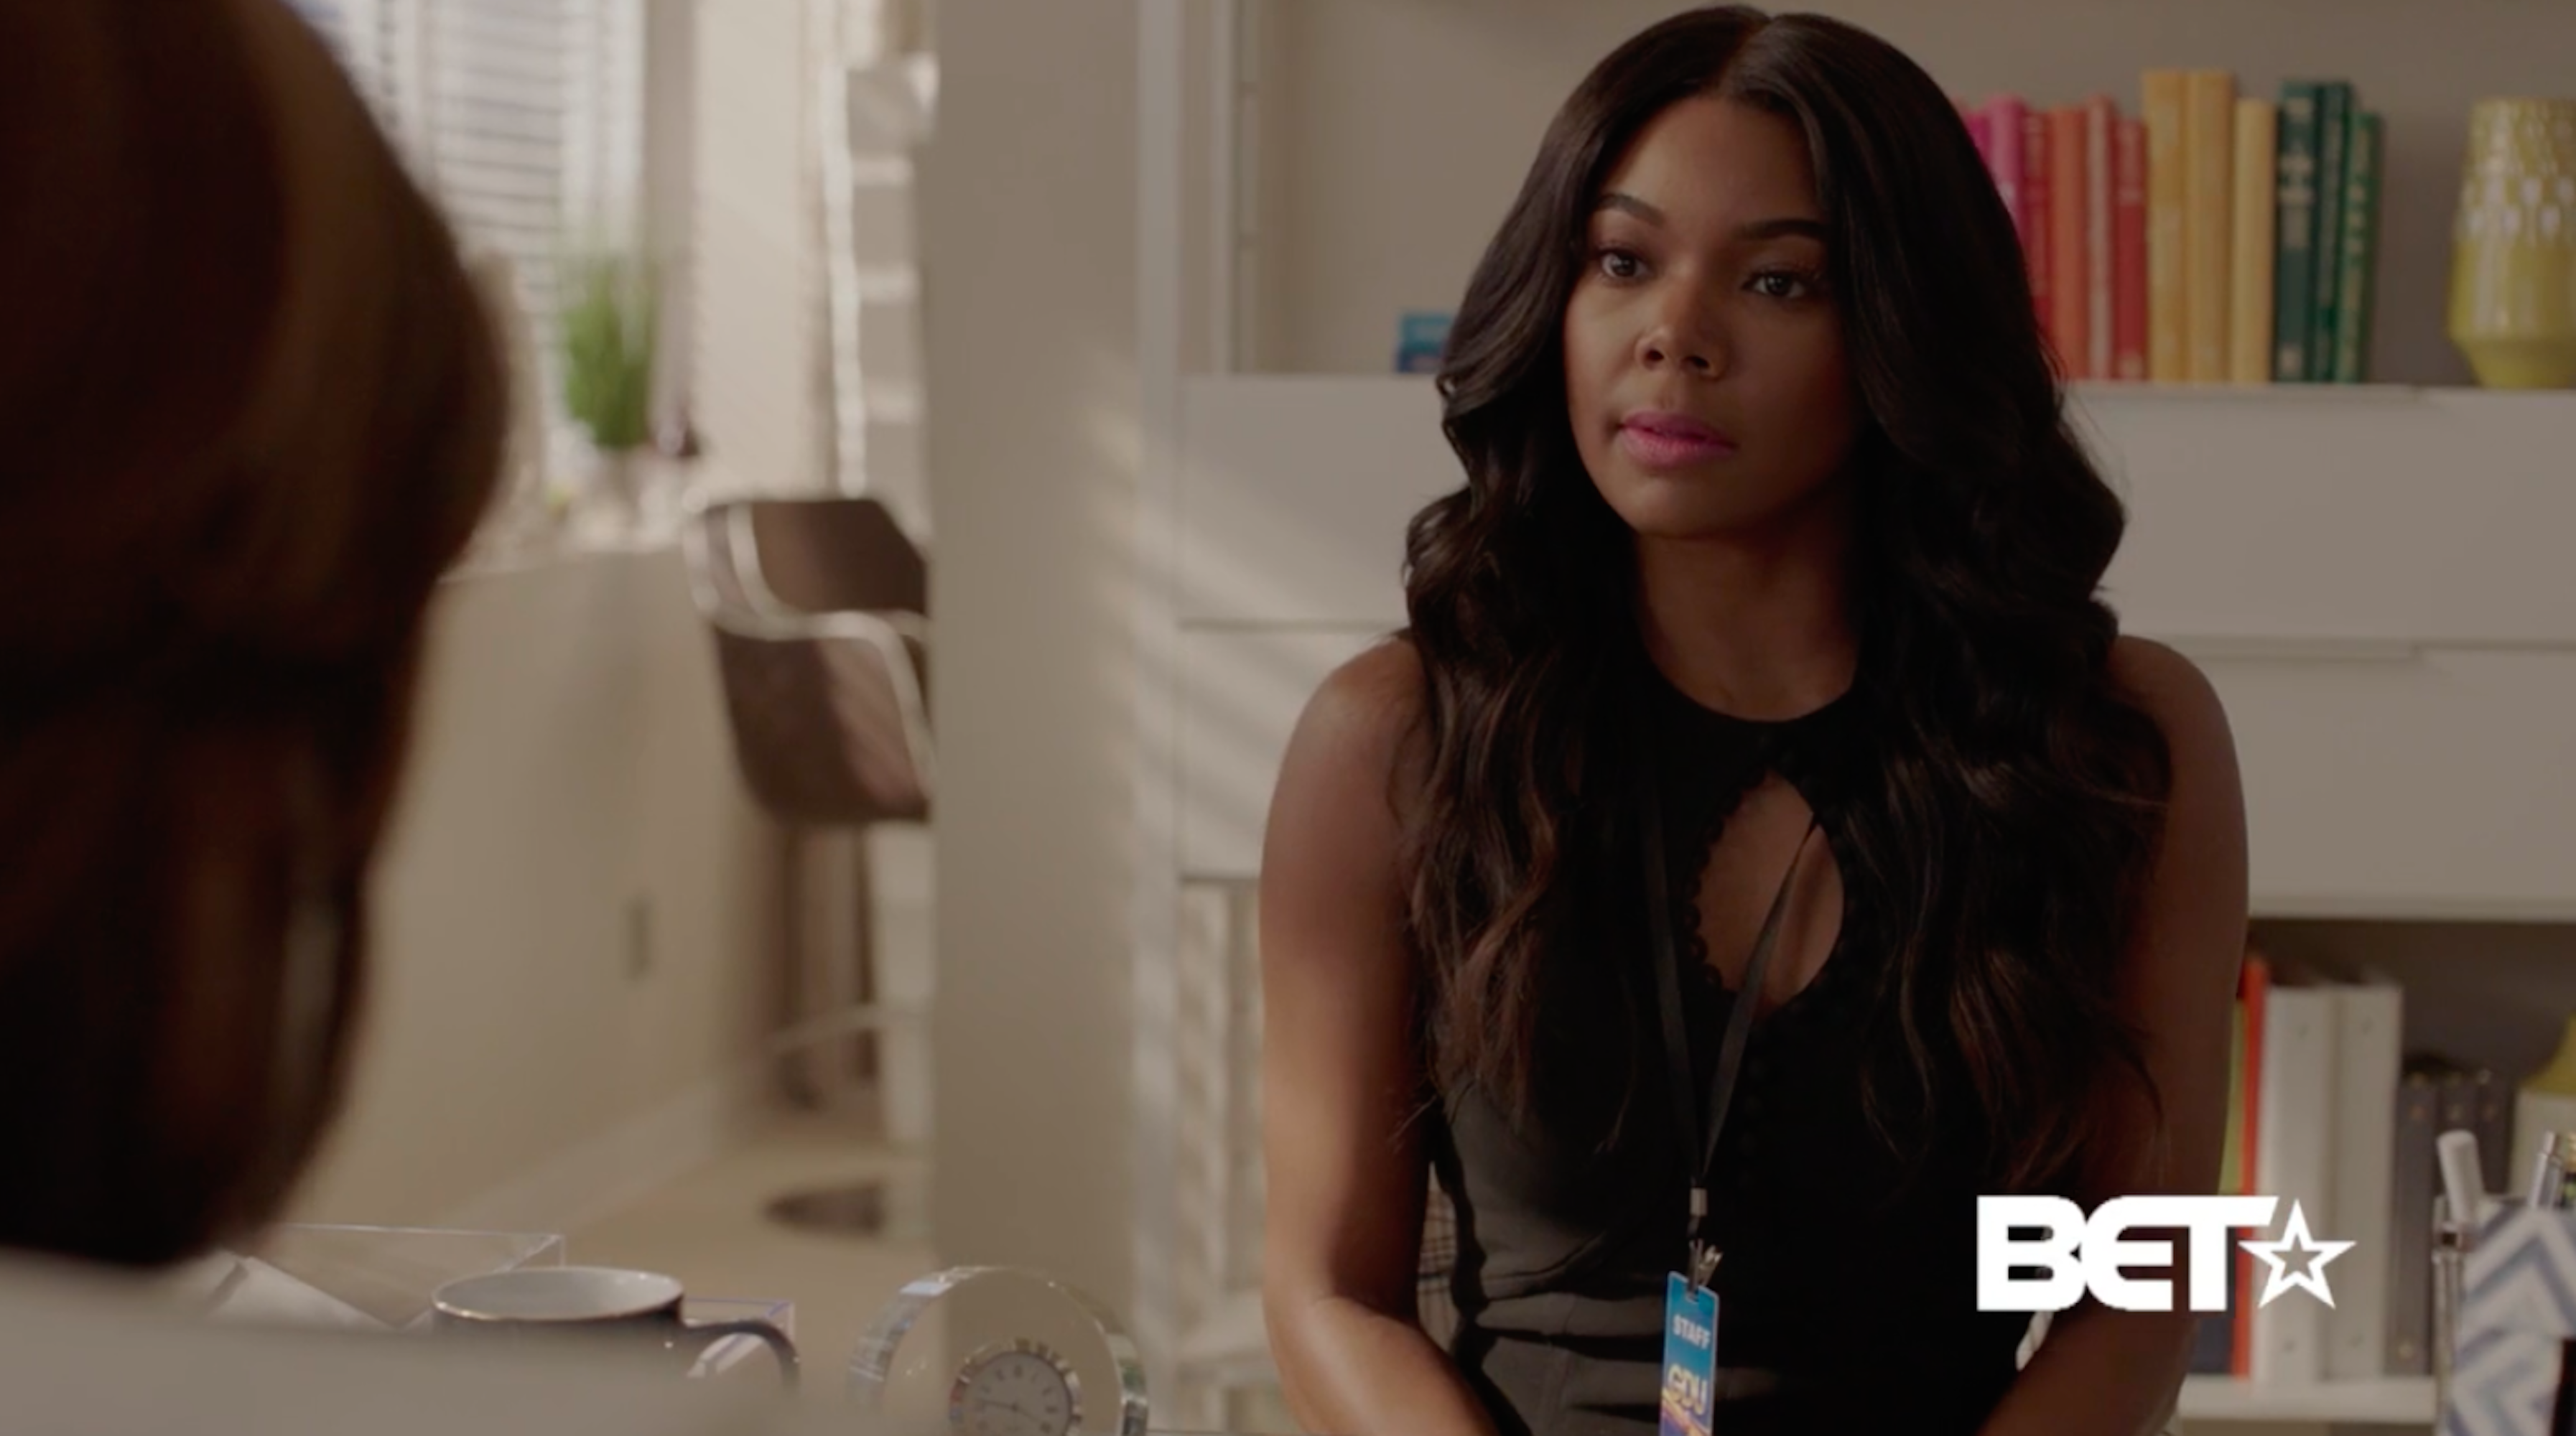 Mr world premiere being mary jane episode 3 : The rise and